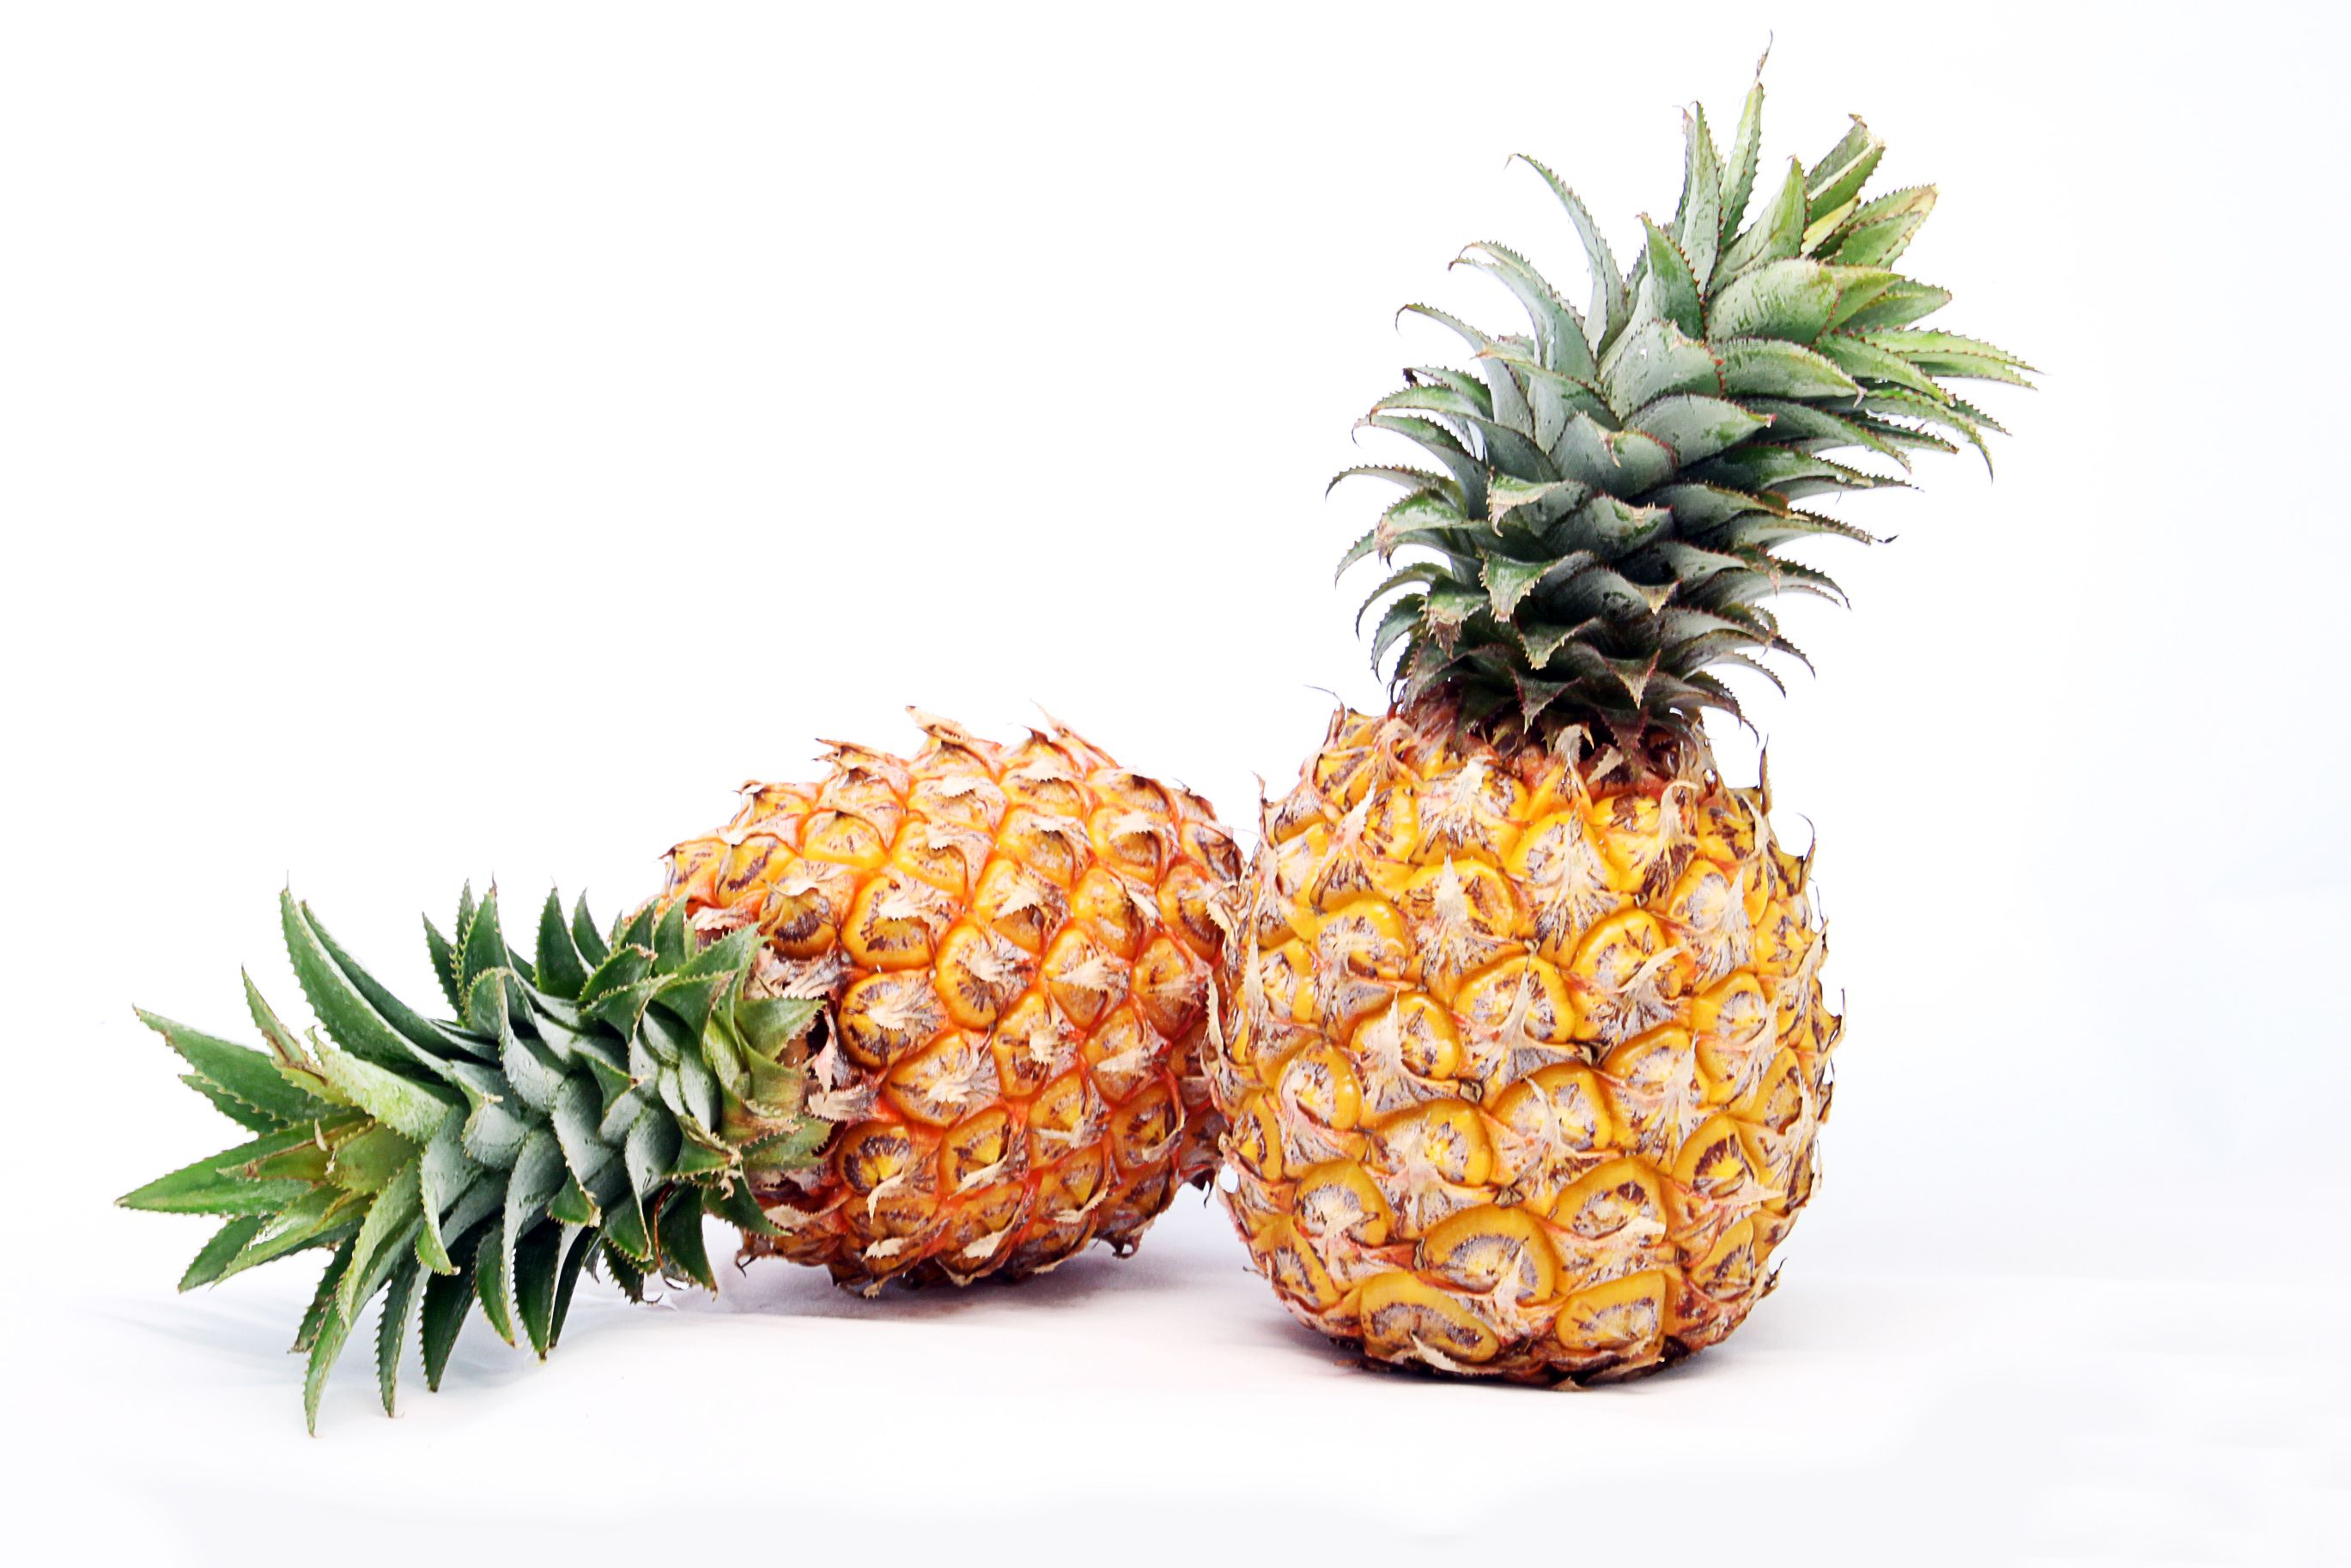 Pineapple Wallpapers Hd Backgrounds Images Pics Photos Free Pineapple Benefits Fruit Health Benefits Organic Fruit